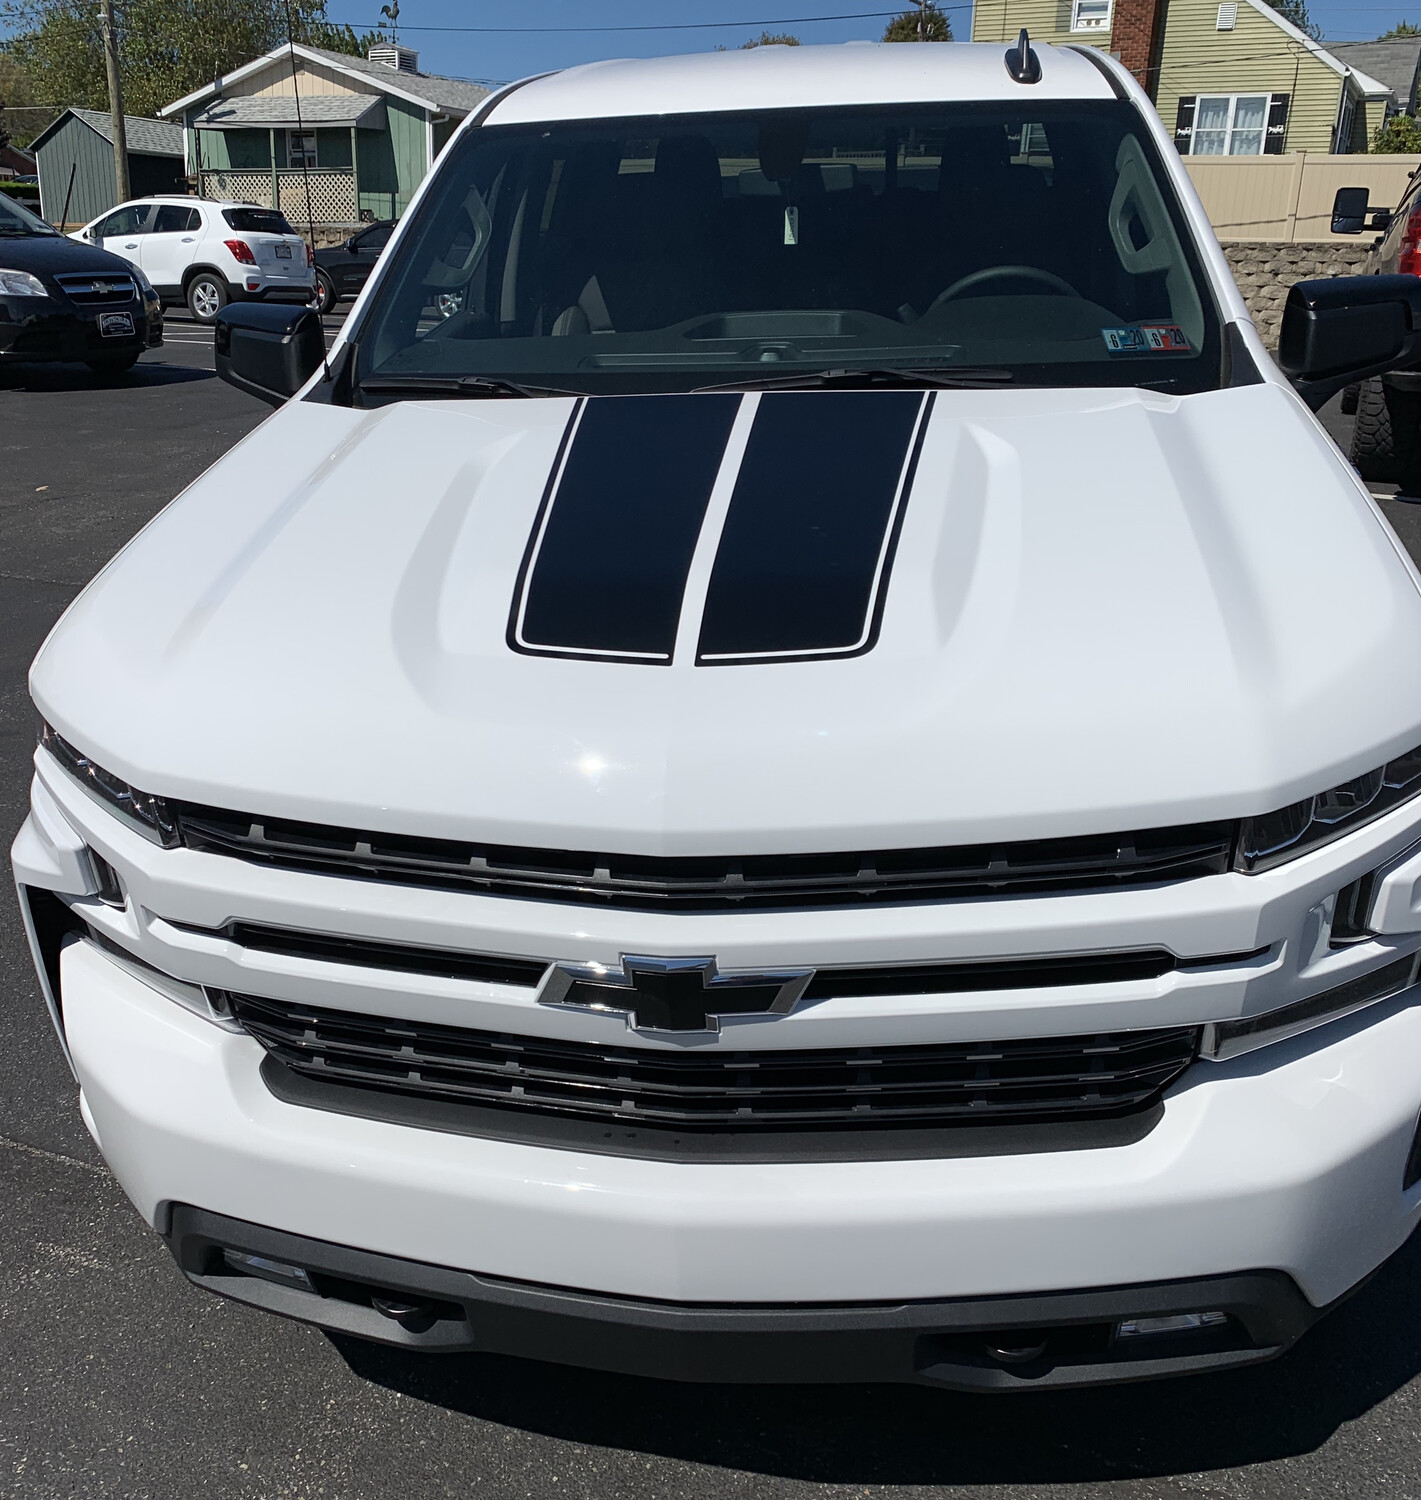 2019 - Up Silverado 1500 Hood Stripes